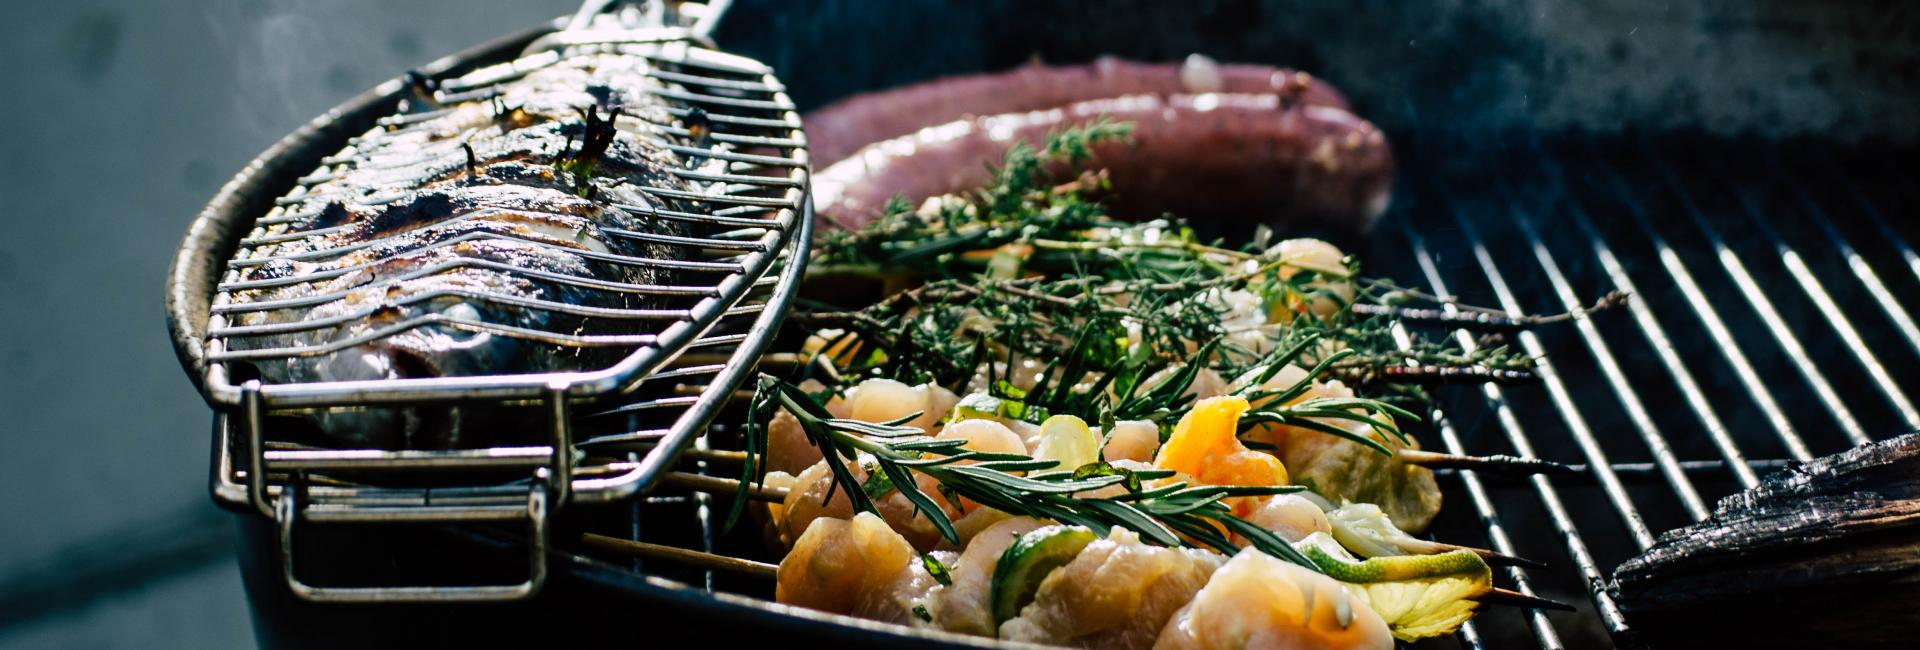 Grill with vegetables, fish and meat